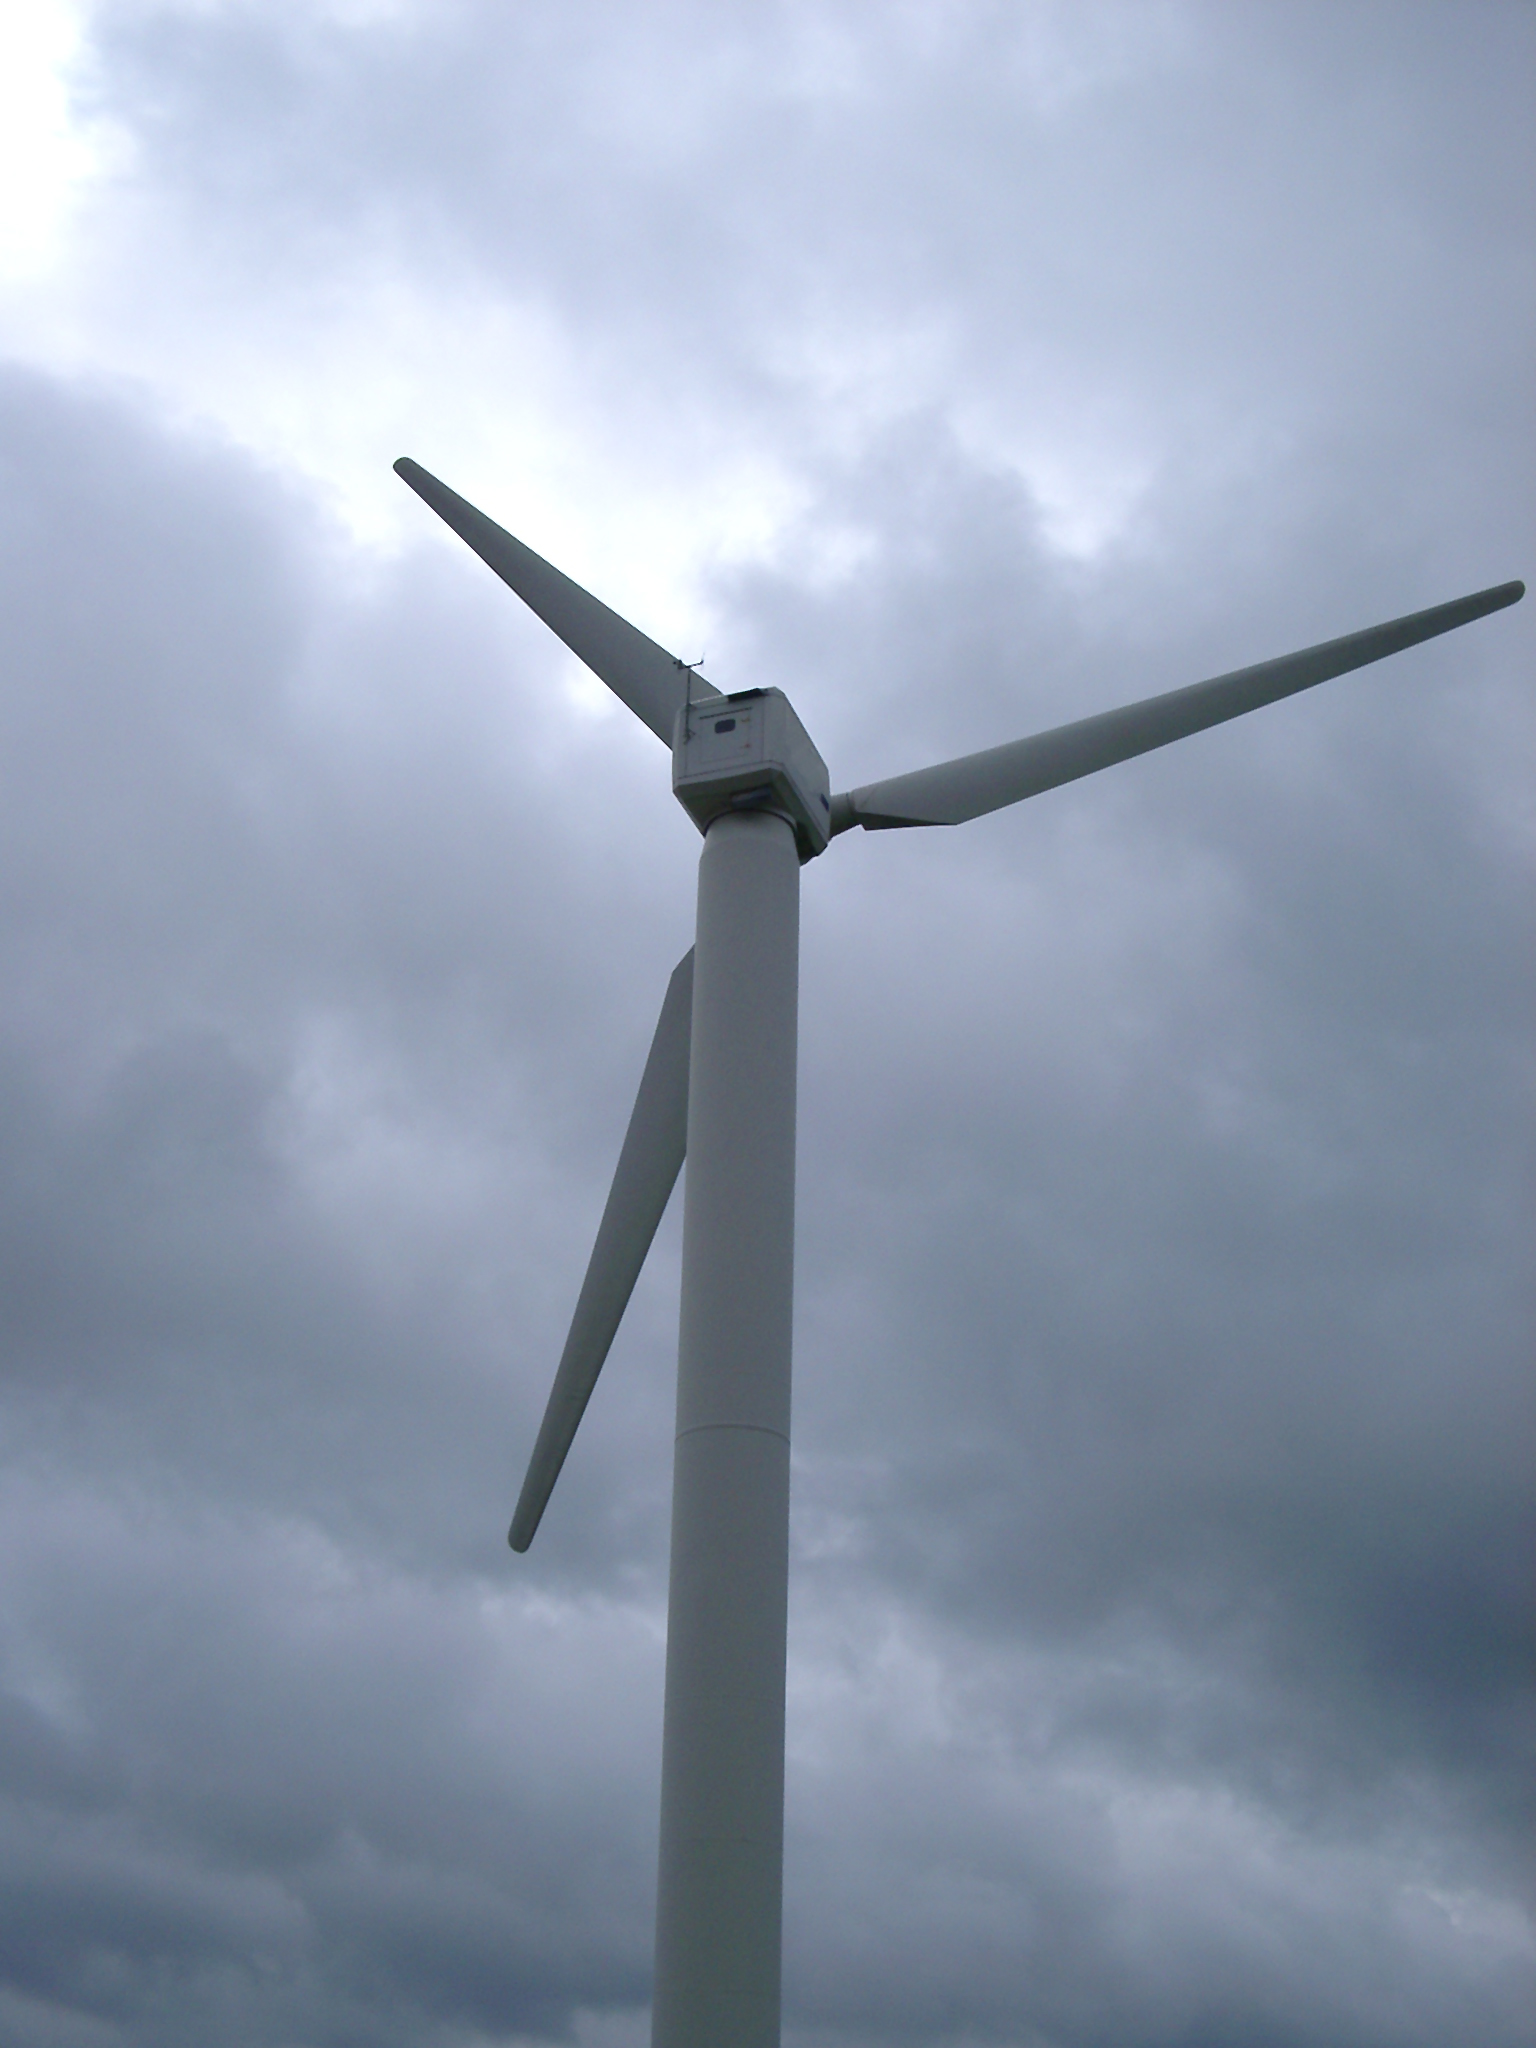 a wind turbine against a stormy sky over a cumbiran fell